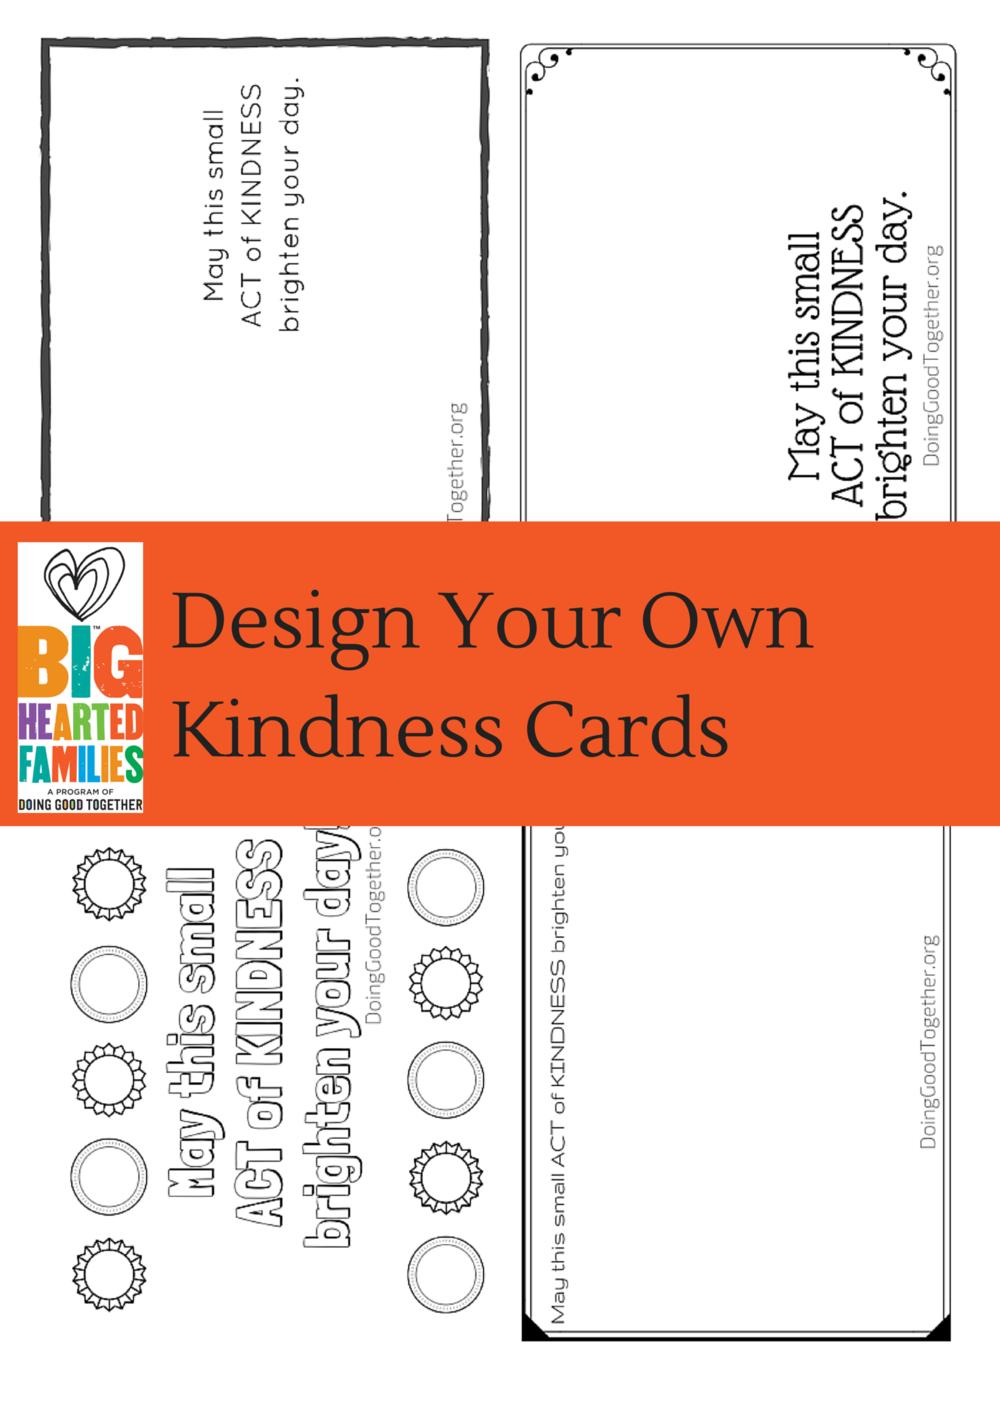 Print and design kindness labels to accompany your random acts of kindness!